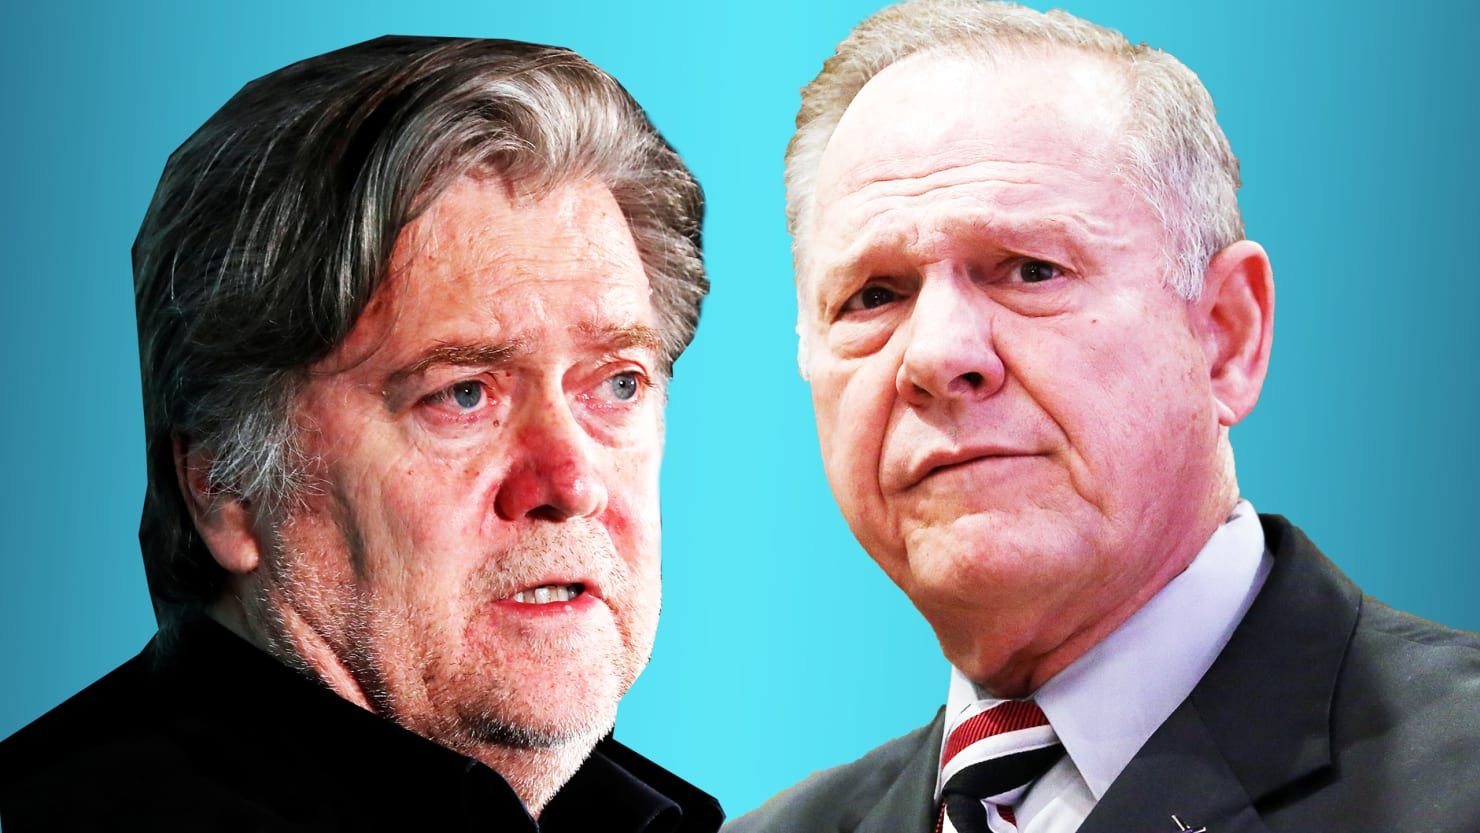 Max Miller: Is It Clear Yet? Steve Bannon Is A Complete Dufus